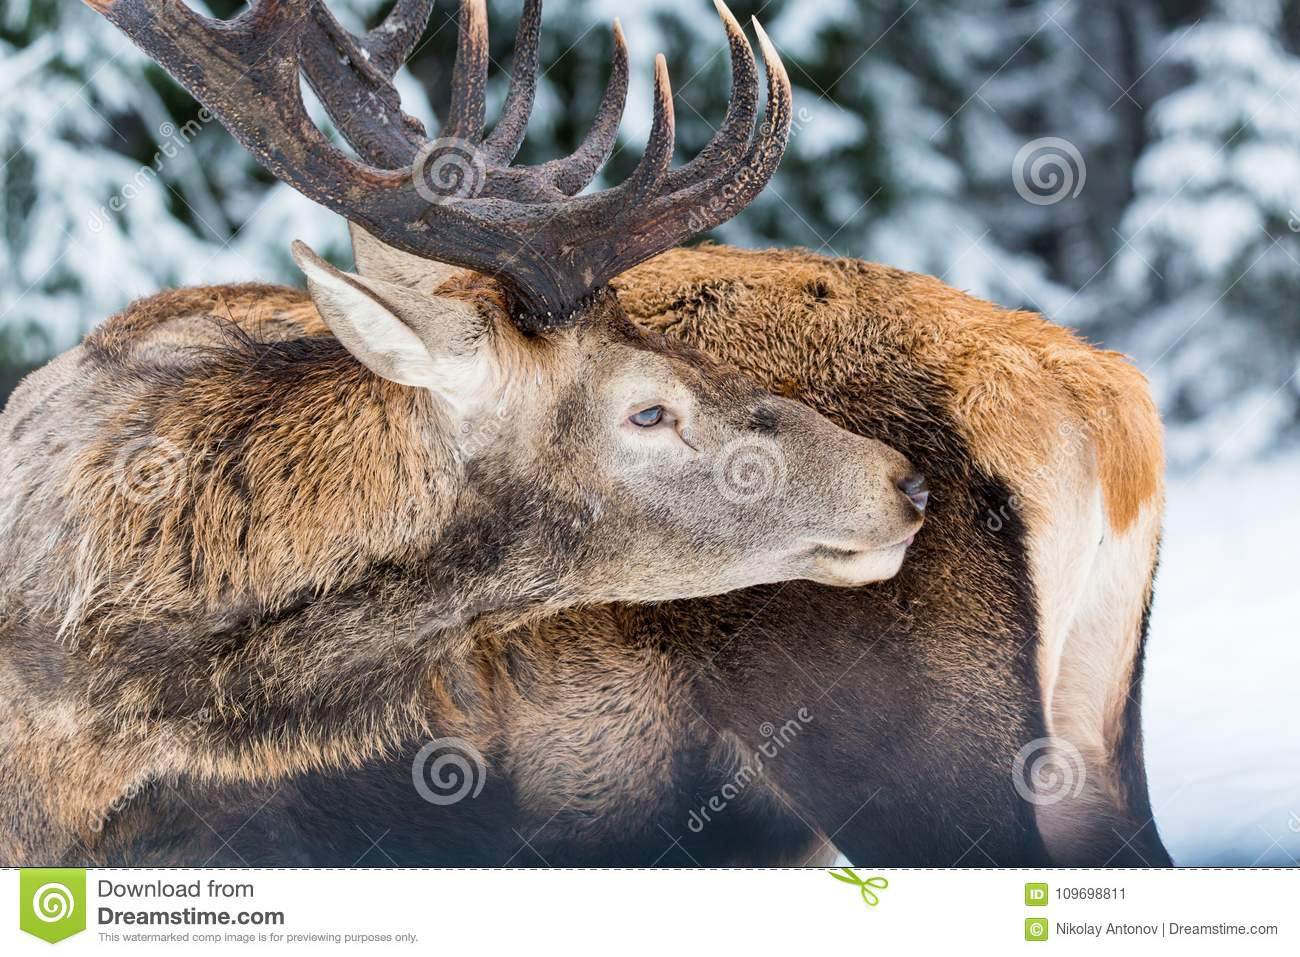 Single adult noble deer with big beautiful horns licking fur on winter forest background. Close up portrait